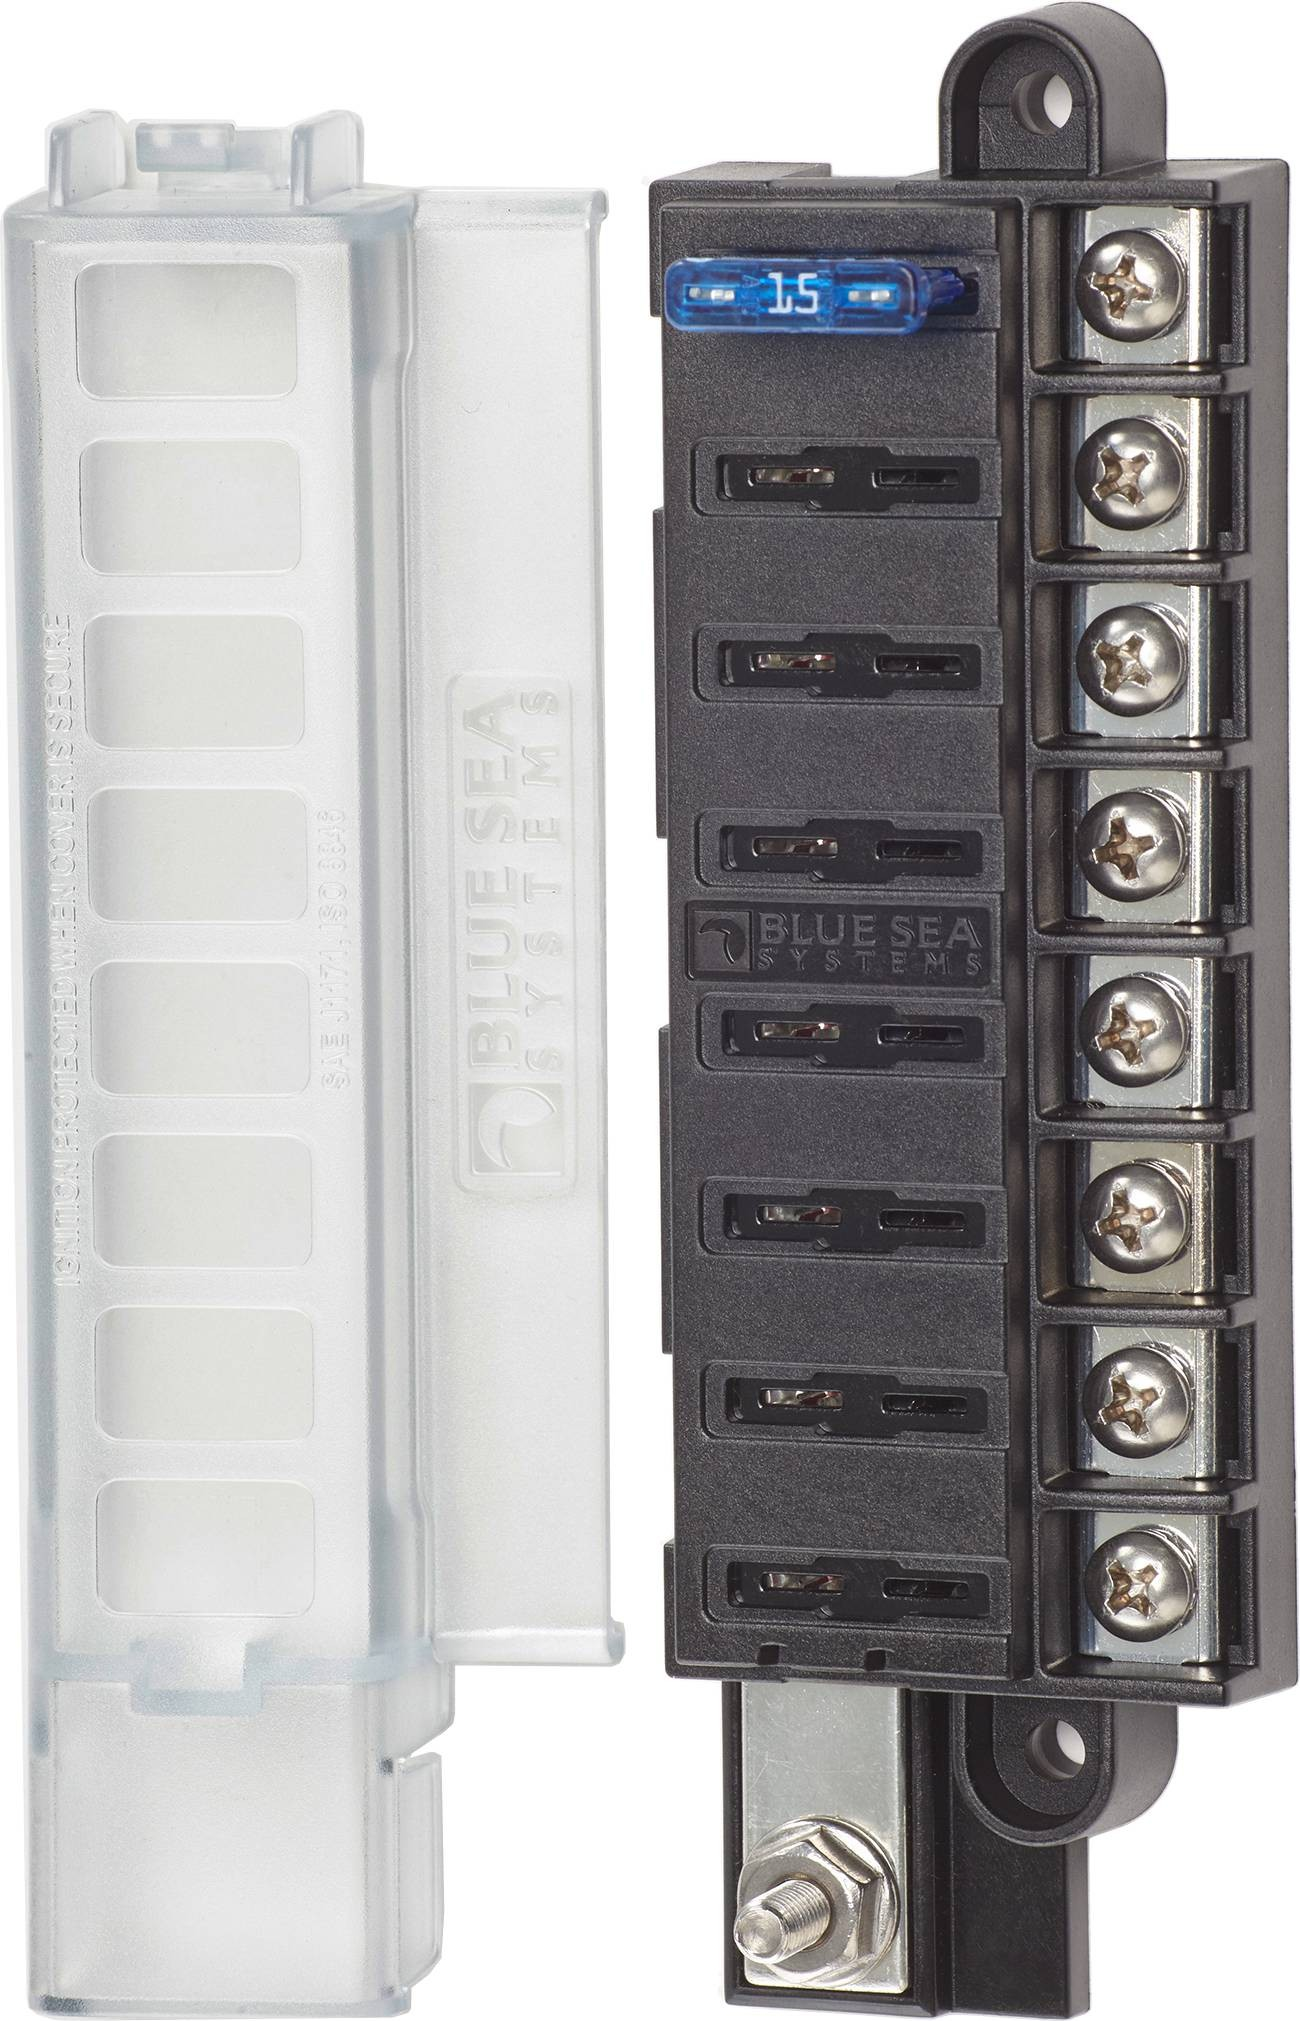 4x4 outdoor tuning bluesea fuse box with cover for 8 blade fuse box south  africa blade fuse box halfords